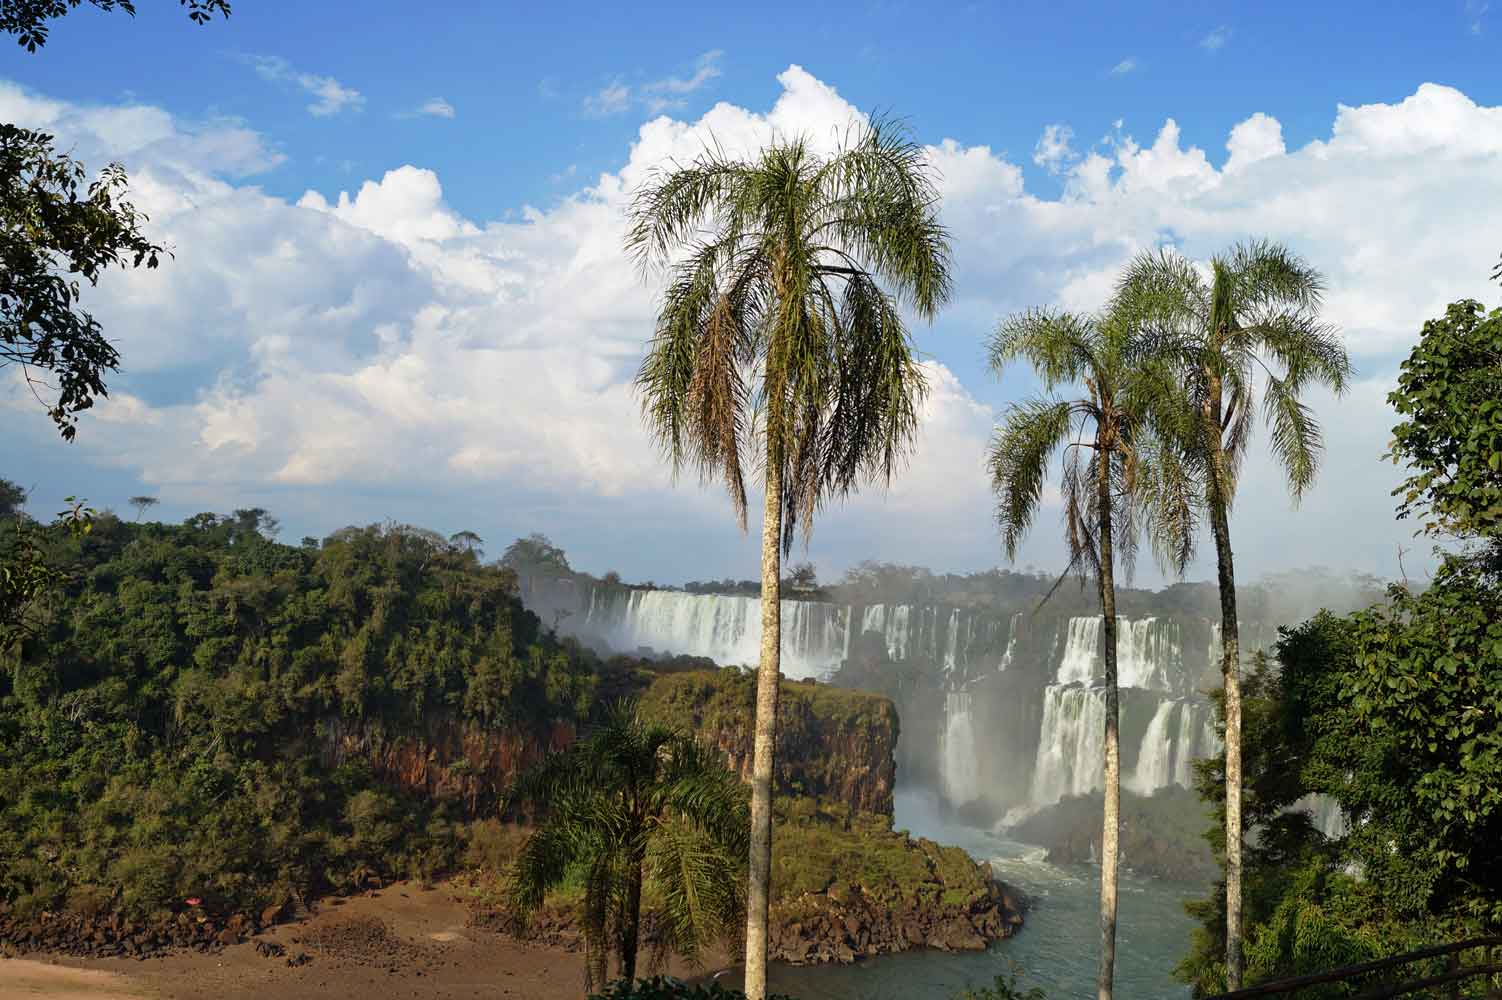 Trail am Iguazu Wasserfall